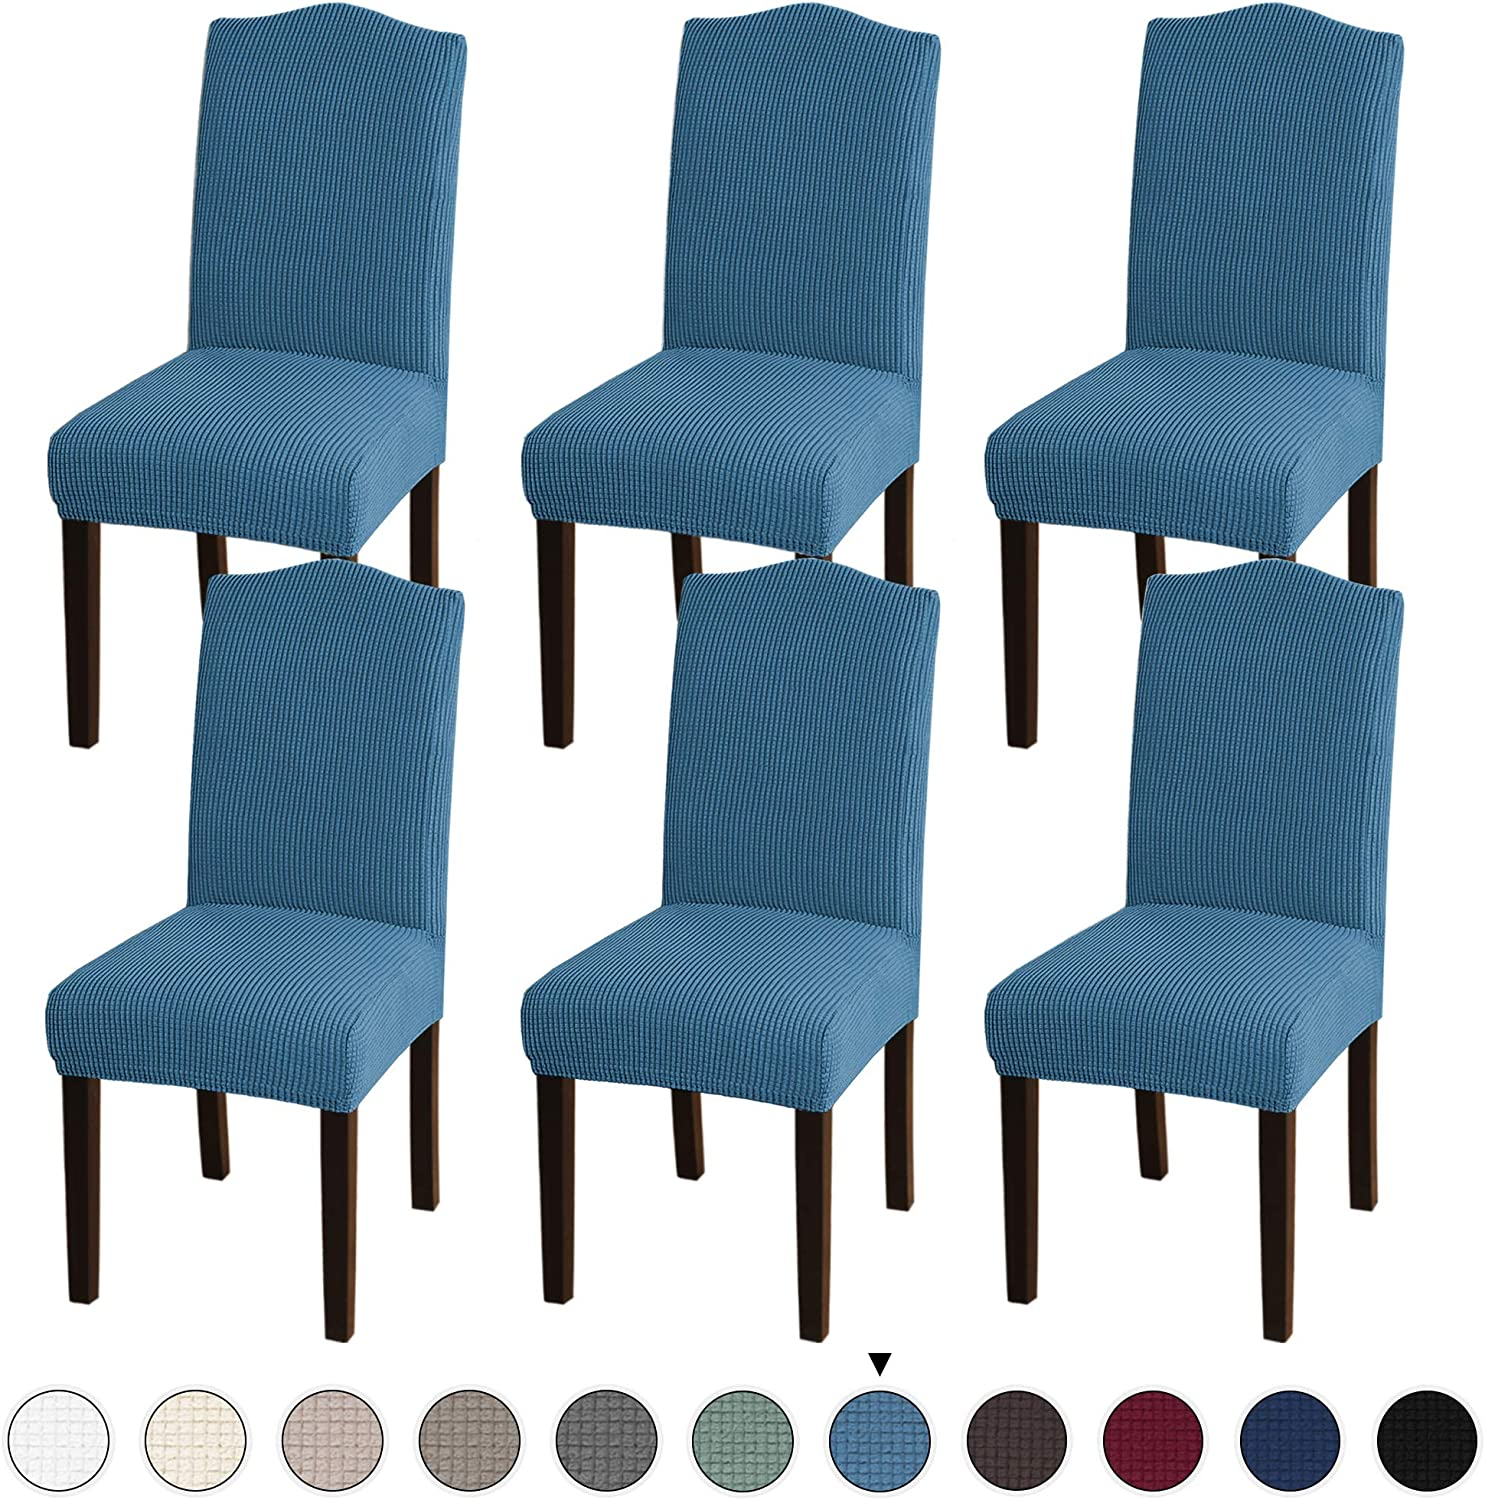 Stretch Dining Chair Slipcovers Jacquard Removable Washable High Dining Room Chair Protector Covers Sets Parson Chair Protector Cover Perfect for Dining Room Ceremony 4, Dusty Blue Hotel